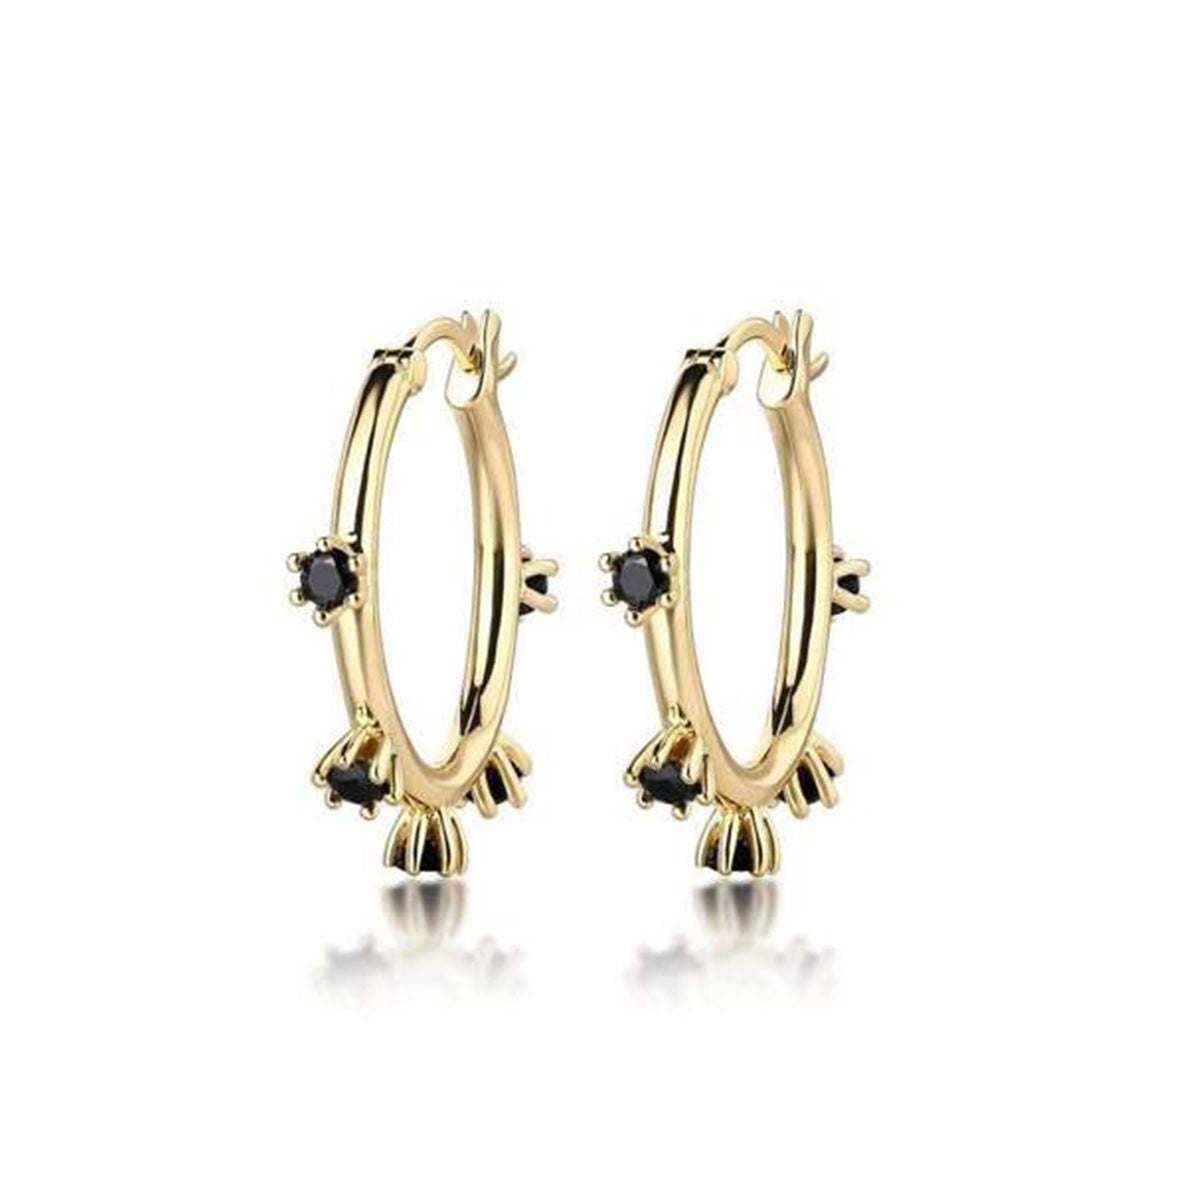 Adele Spike Hoops Earrings